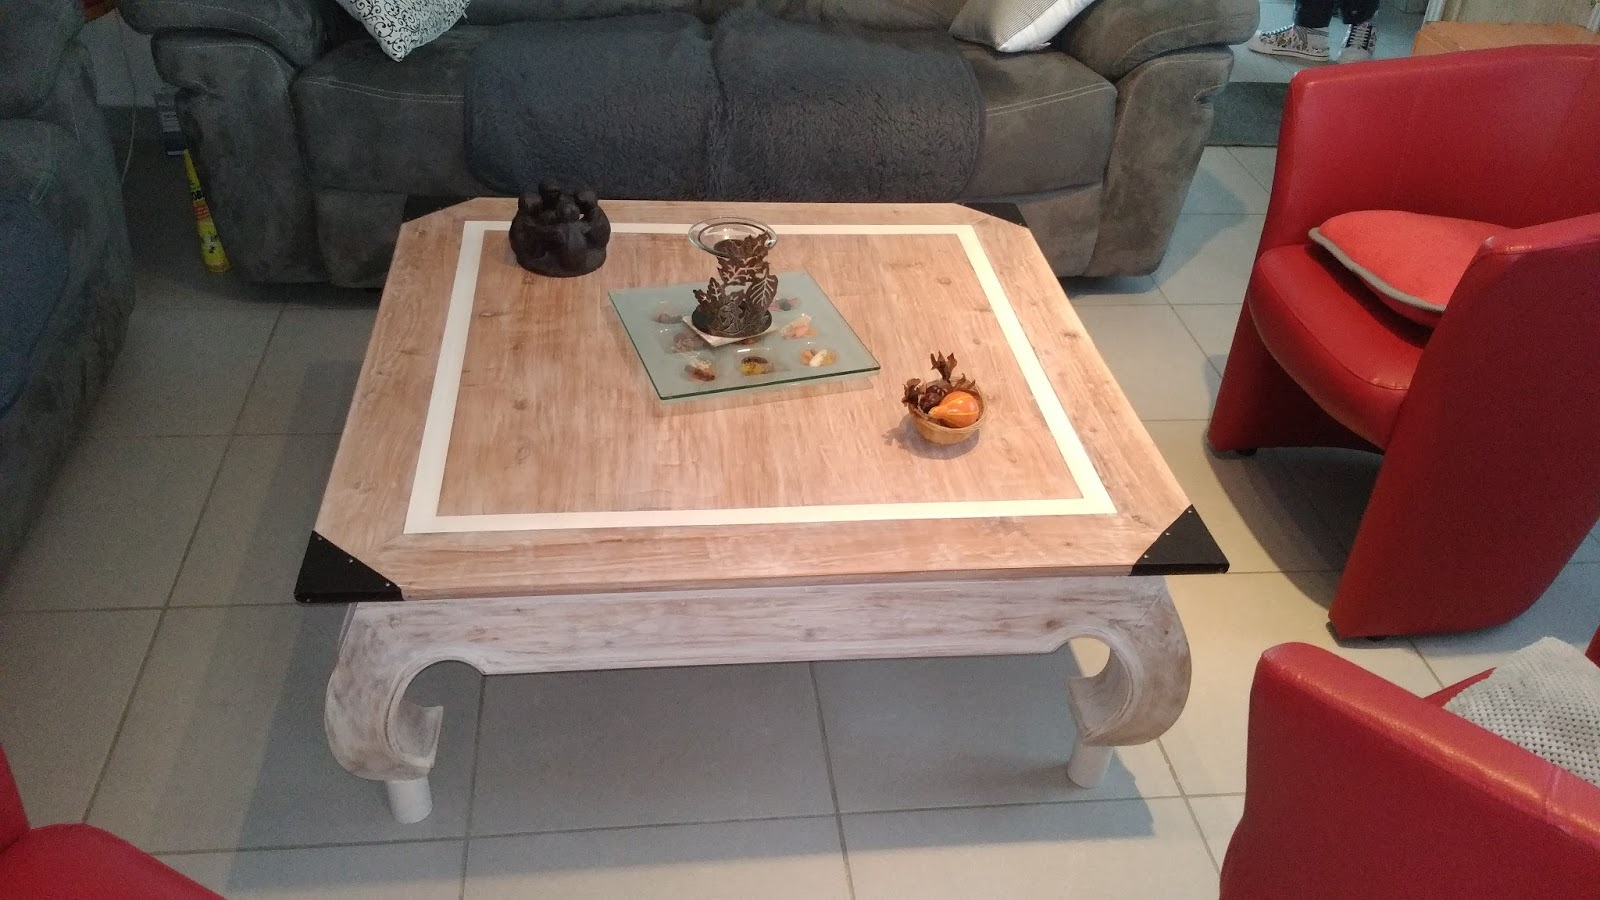 O 39 bois recycl restauration d 39 une table basse opium - Restauration d une table en bois ...